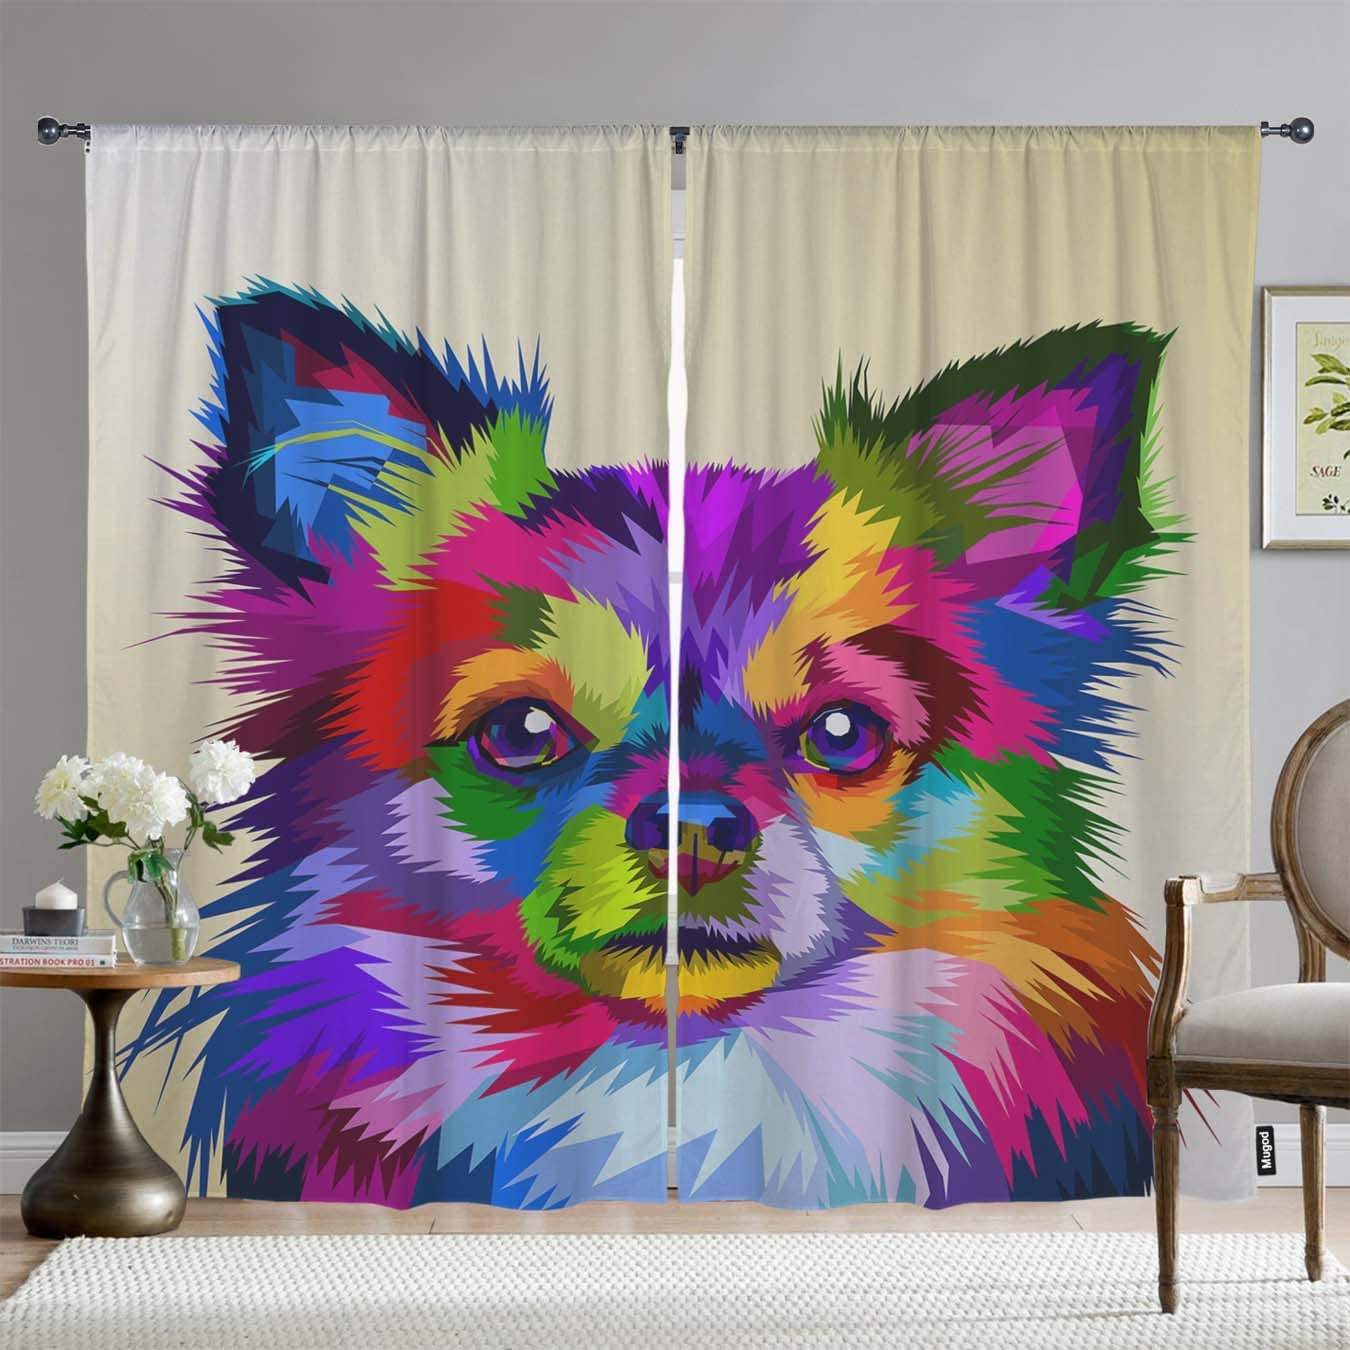 Mugod Dog Blackout Window Curtains Colorful Chihuahua Dog in Pop Art Style Decor Room Darkening Drapes Curtains 2 Panels for Bedroom Living Room Kitchen, 108 x 96